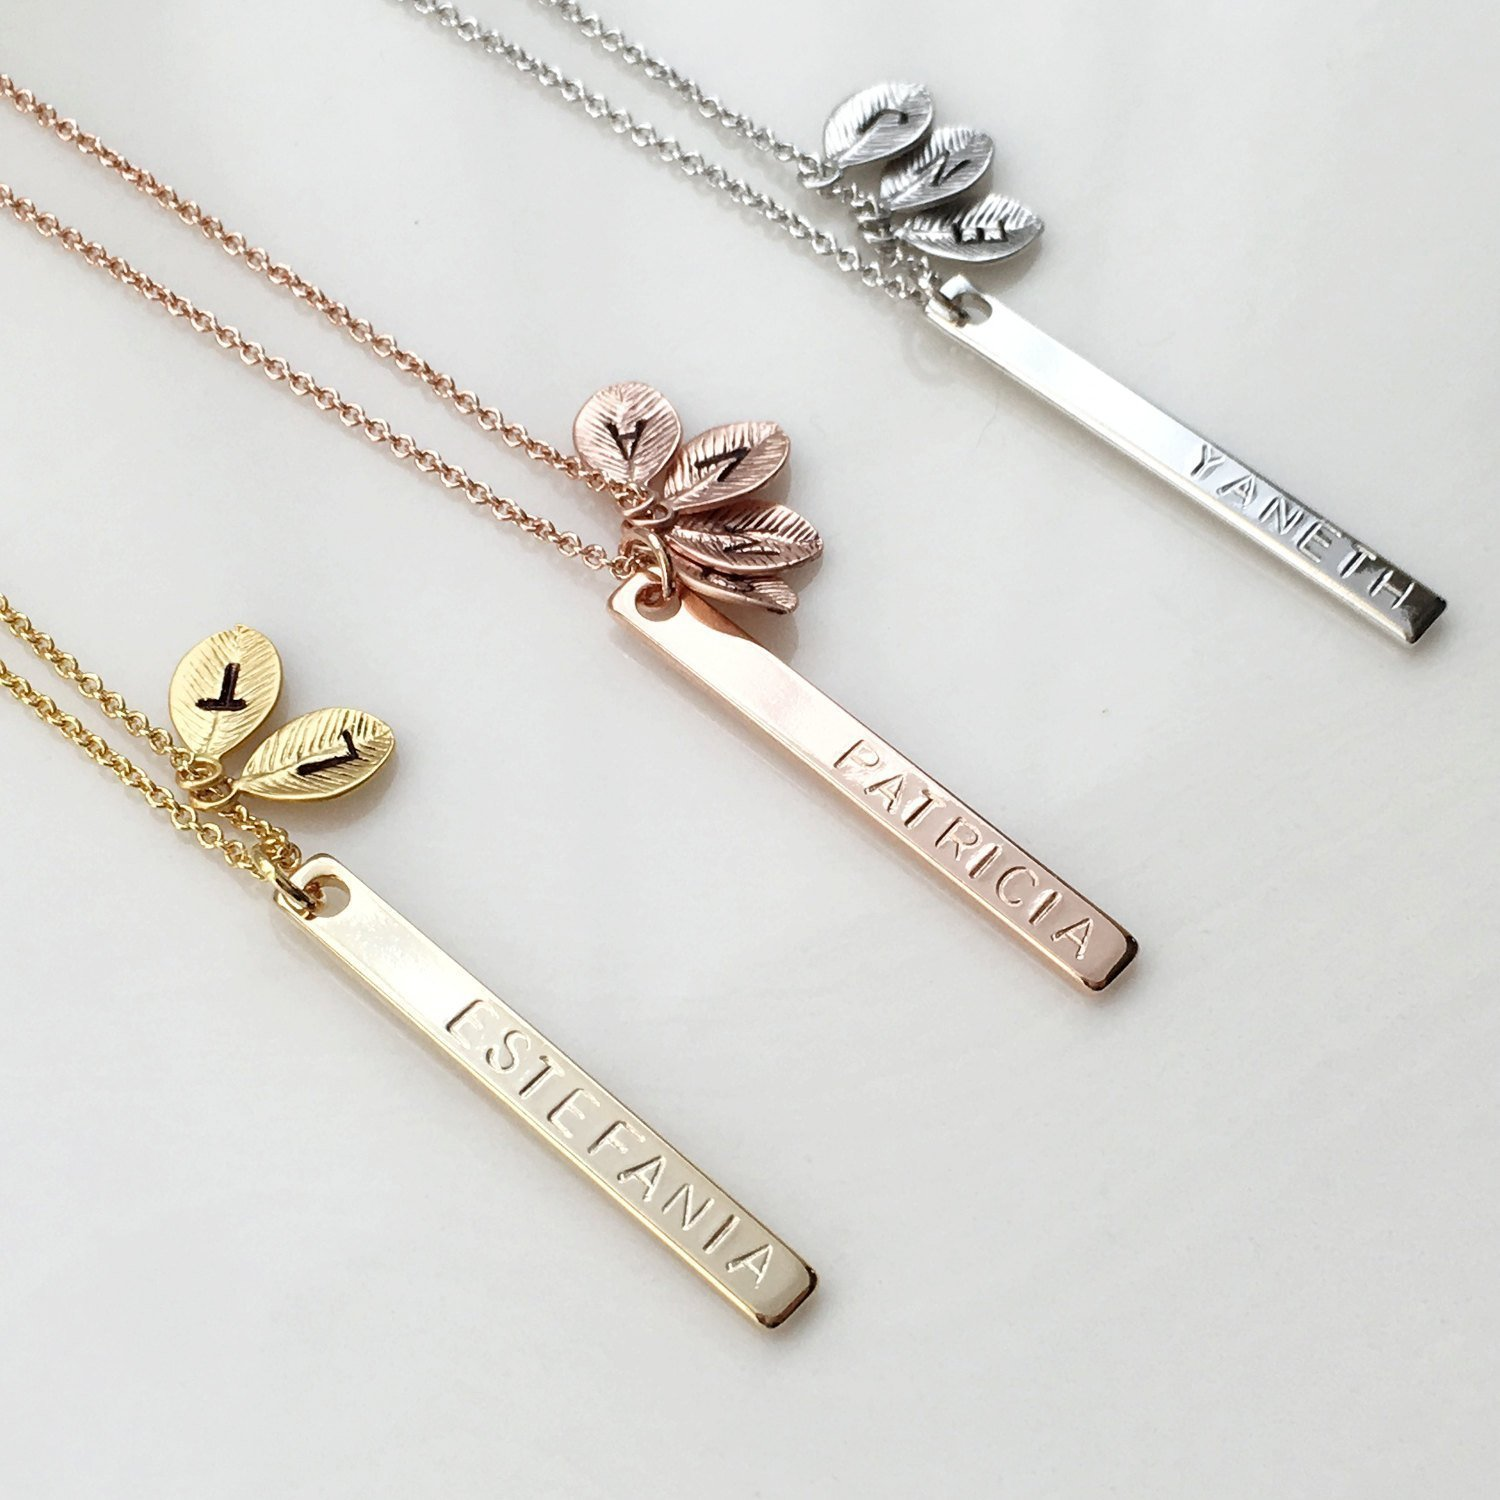 notonthehighstreet product lily necklace com lilybelledesigns family by personalised original belle